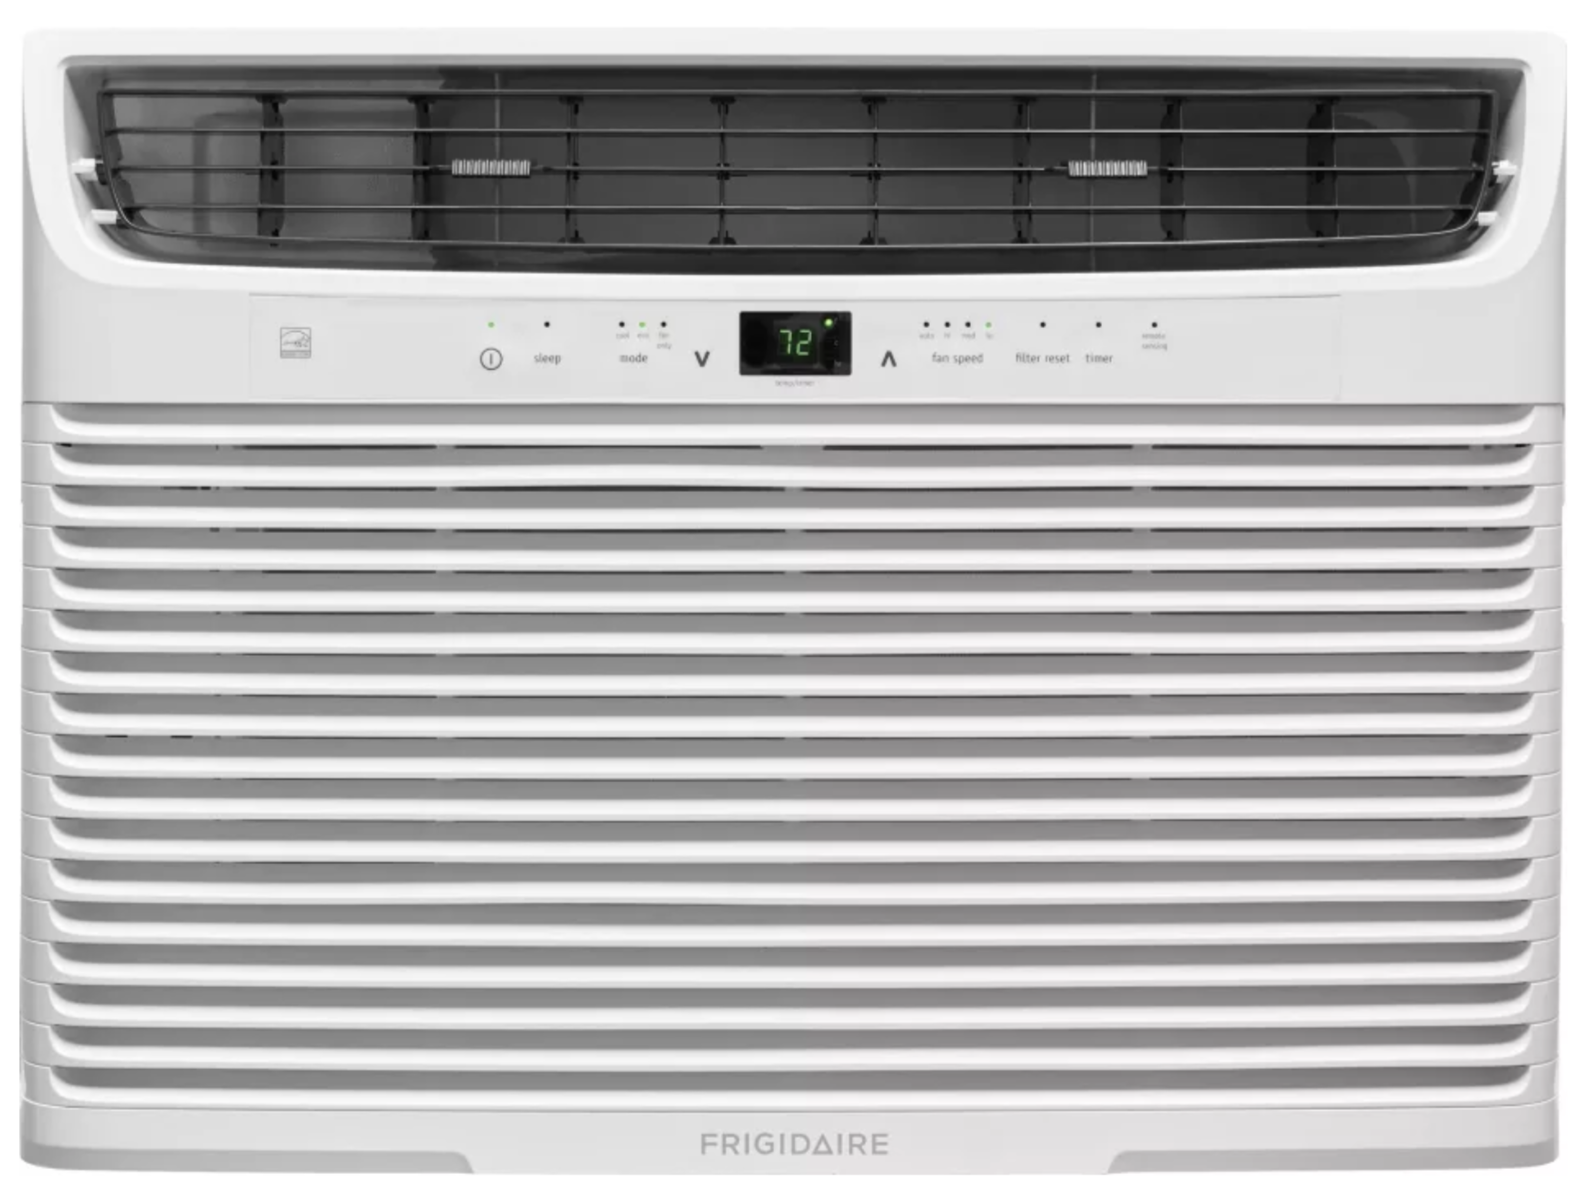 Frigidaire Ffre2533u2 Window Air Conditioner Frigidaire Air Conditioner Cool Things To Buy